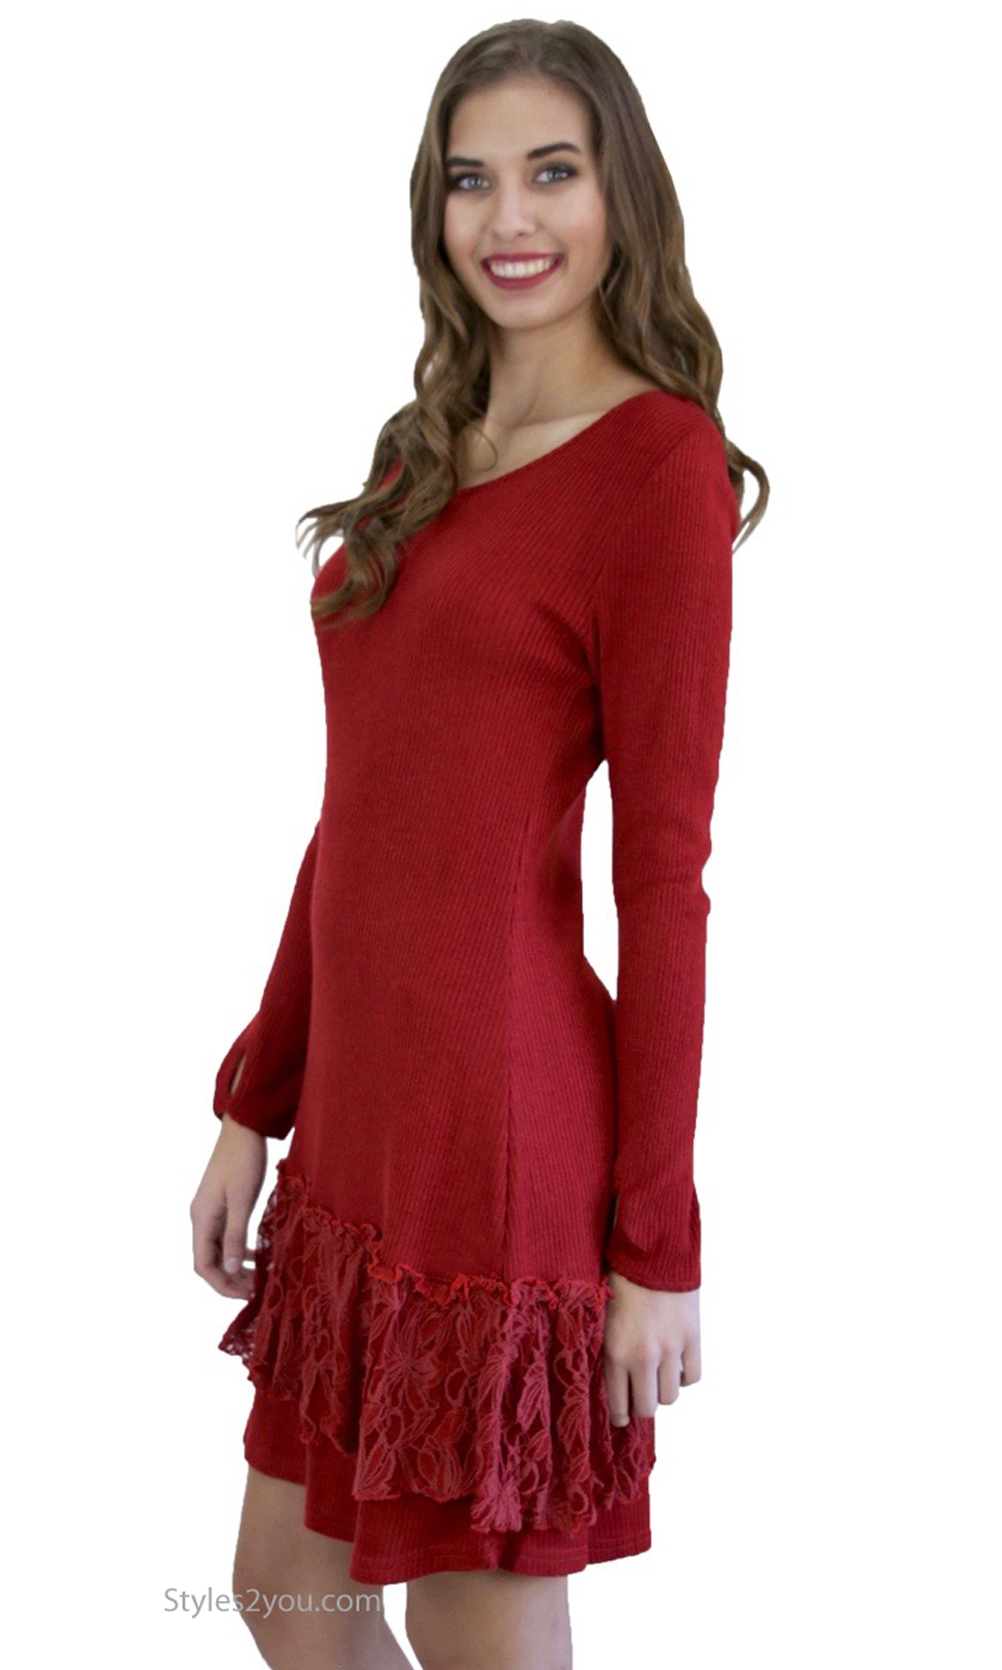 Margaret Sweater Dress Extender With Lace Trim In Dark Red ...